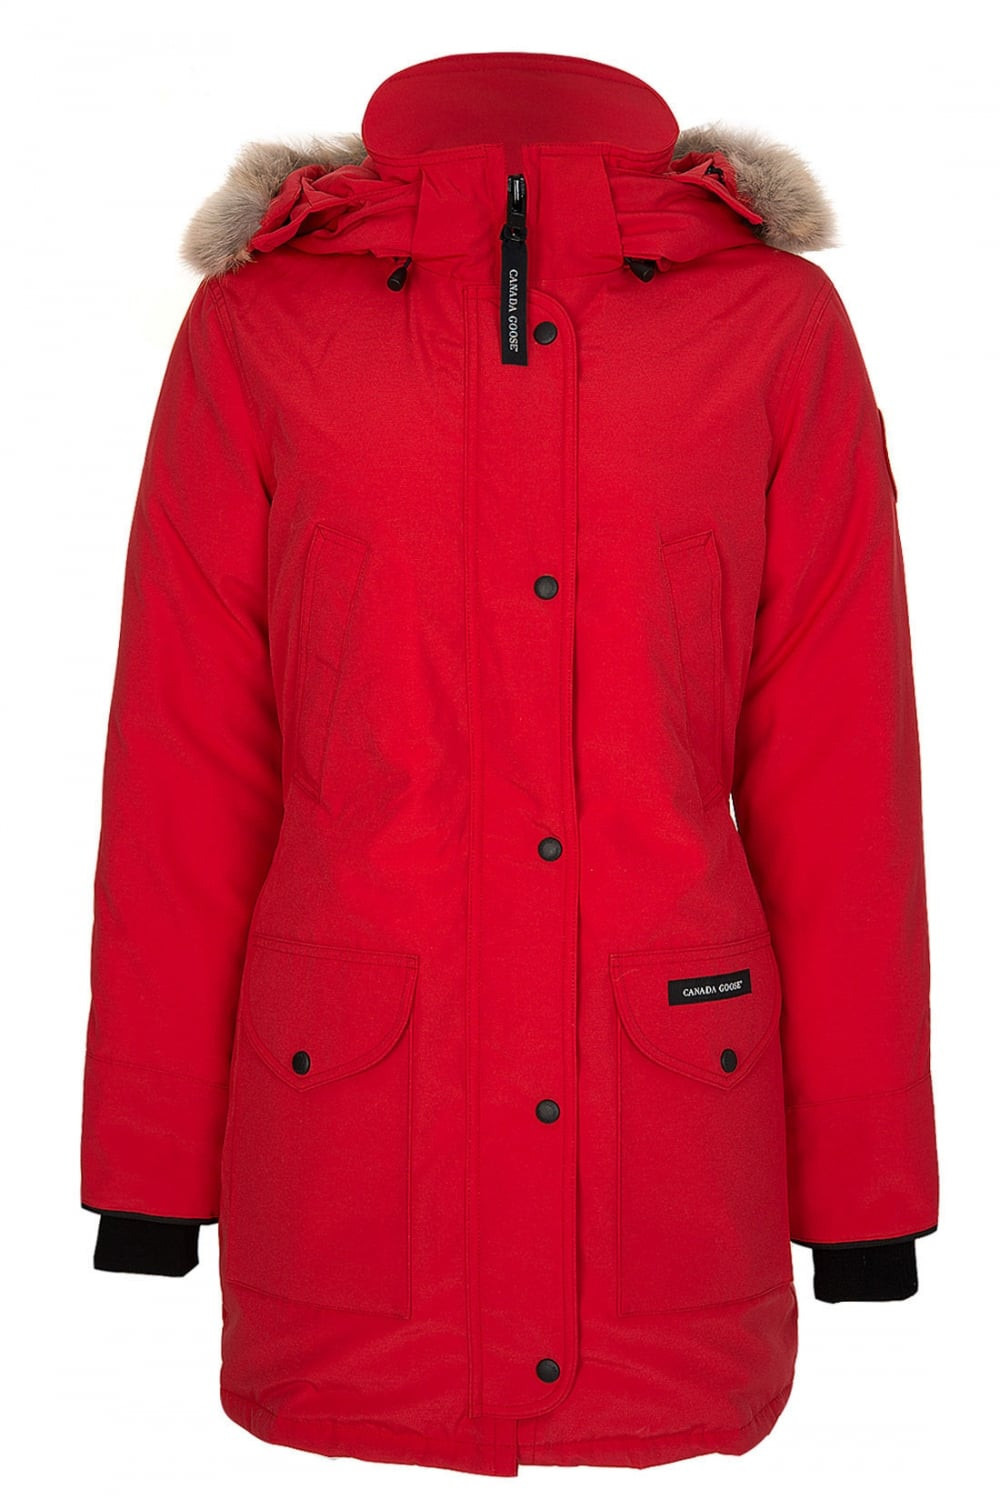 CANADA GOOSE Canada Goose Women s Trillium Parka Red - Clothing from ... ee65f3358